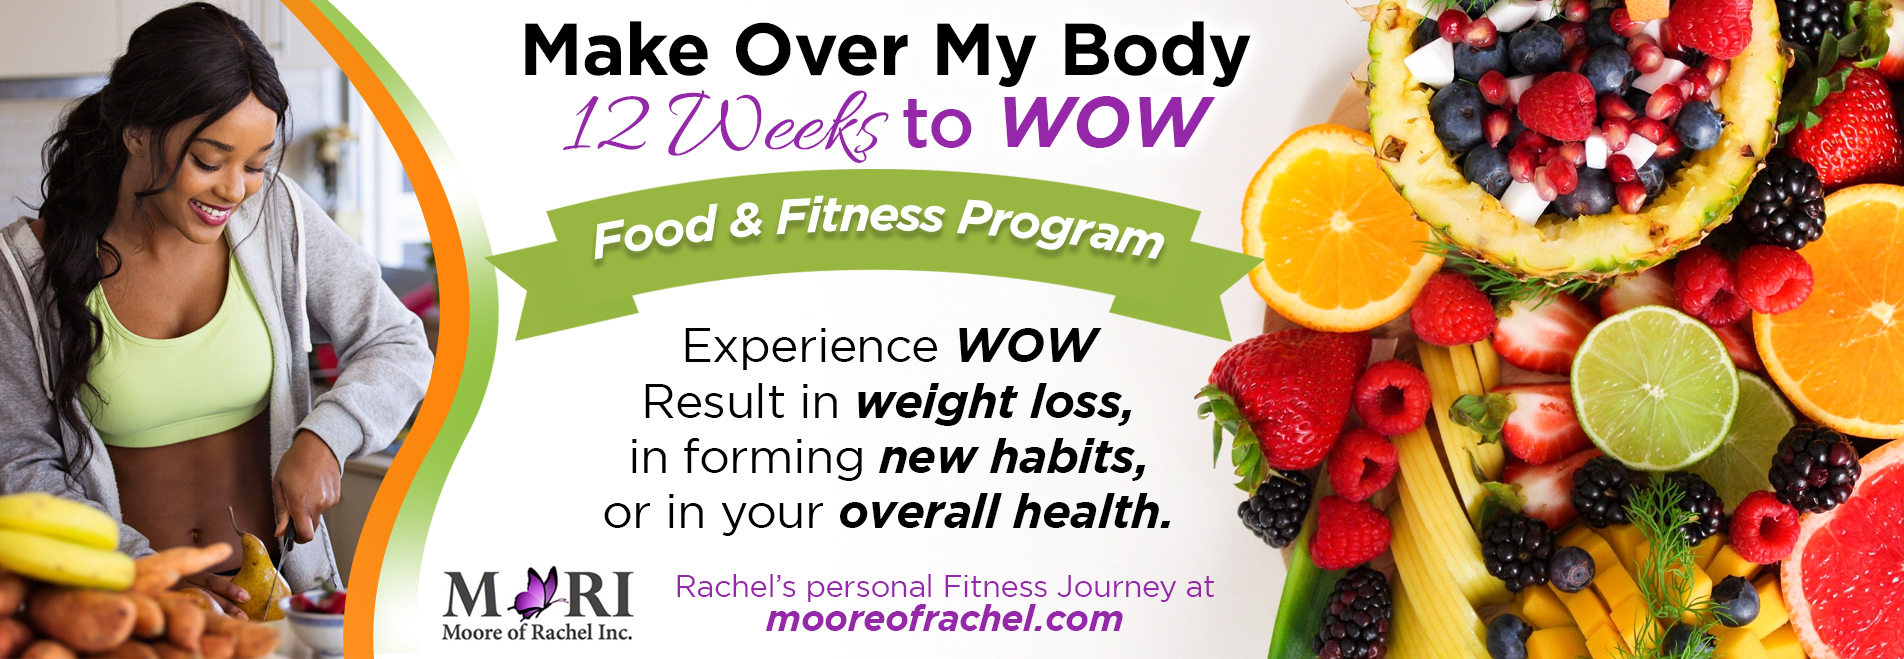 Make Over My Body - 12 Weeks to WOW